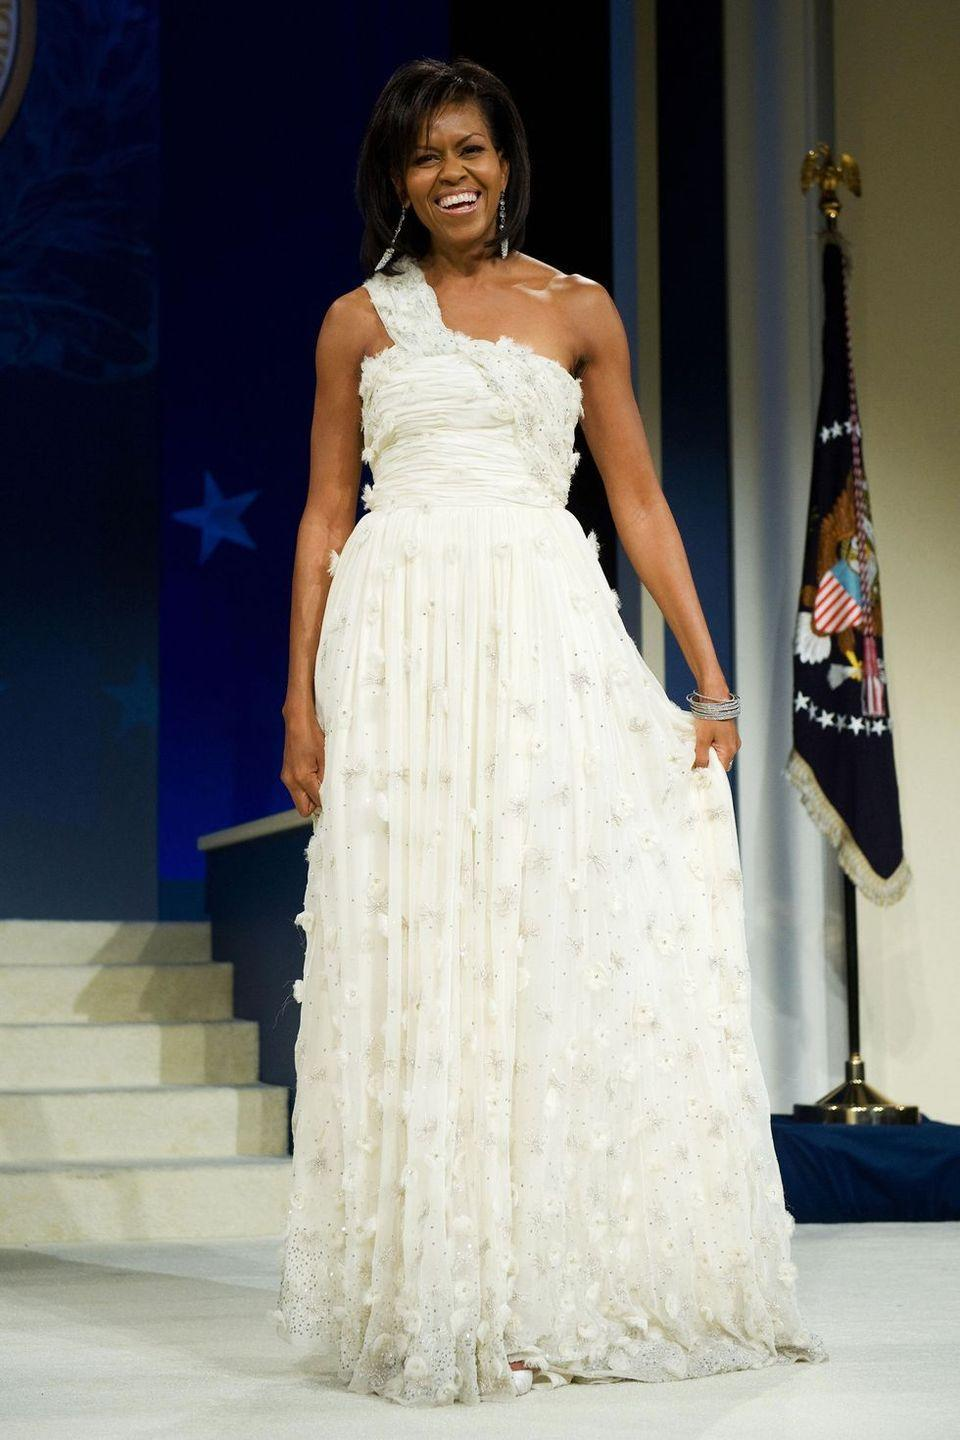 <p>The joy of Inauguration Day in 2009 was made all the better with this bold, floral Jason Wu dress worn by the blossoming First Lady herself. Michelle Obama used her platform for amazing work and empowering women. Of course, she never forgot to dress the part, becoming an influential and timeless fashion figure as her side gig.</p>